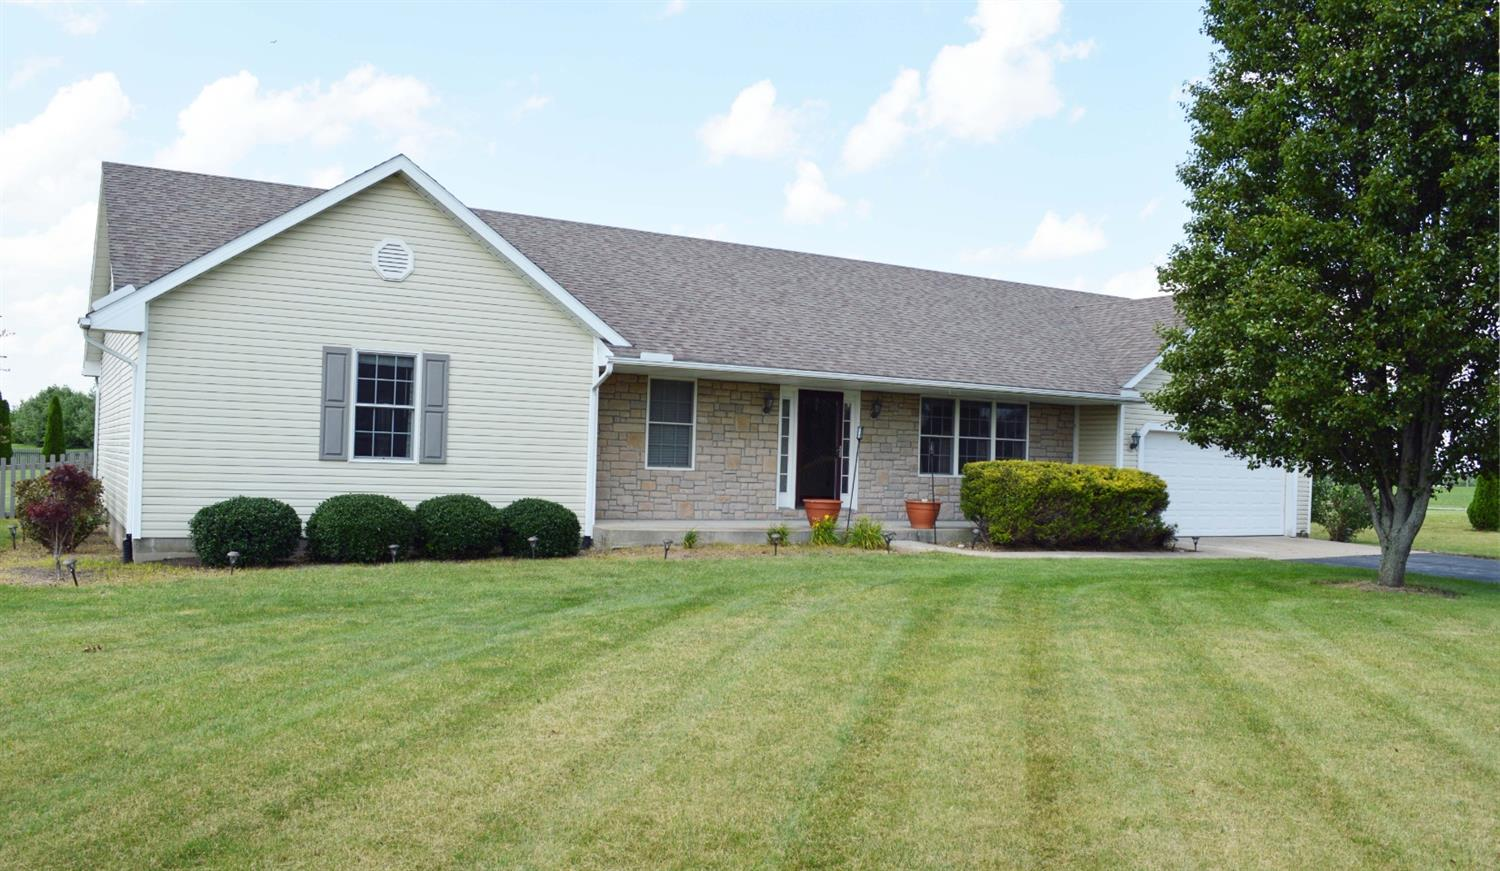 Photo 2 for 55 Waverly Way Wilmington, OH 45177